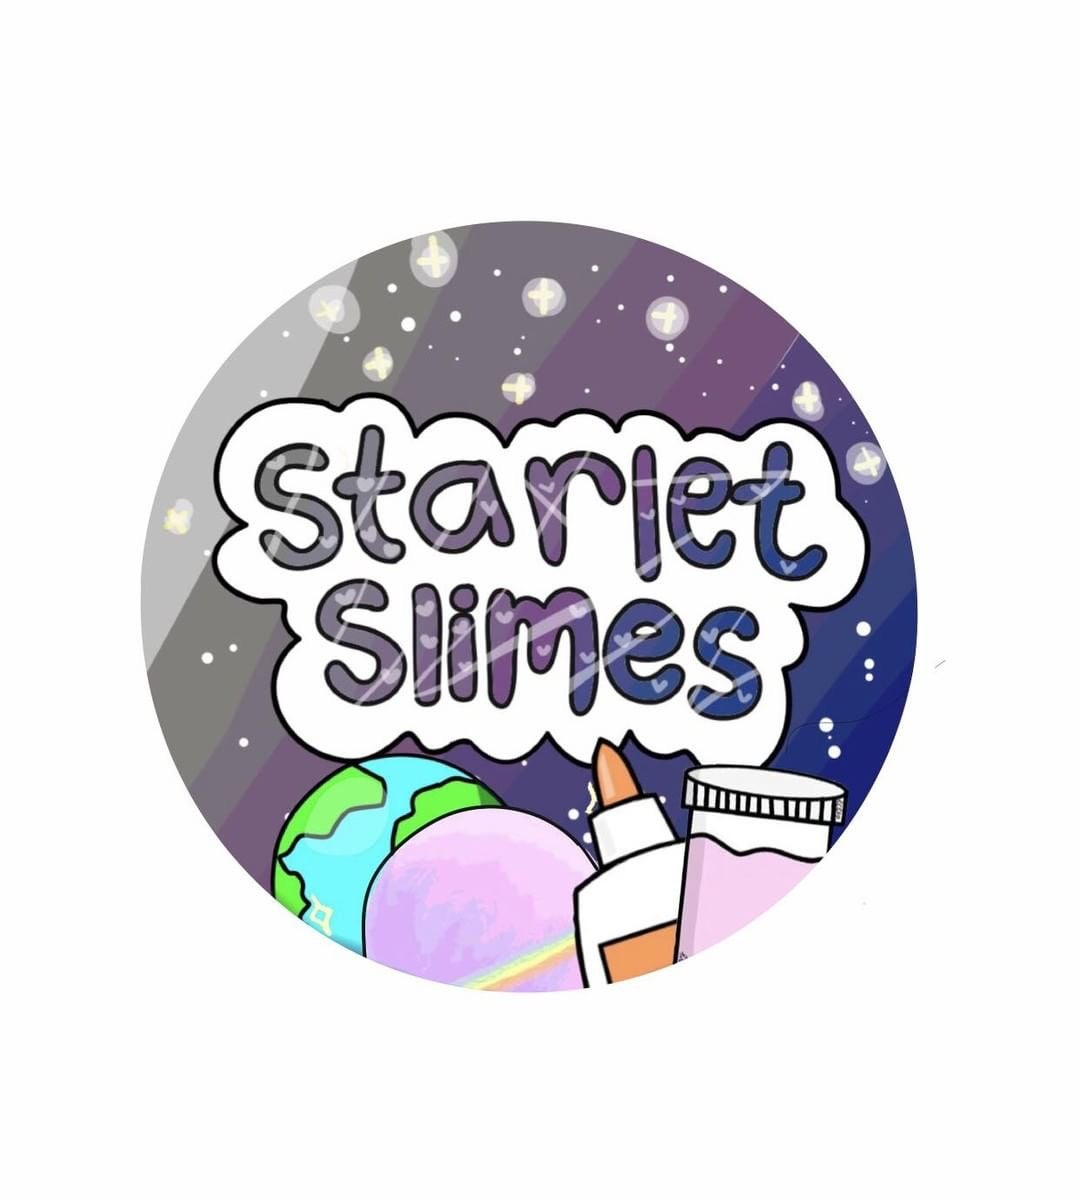 Home starlet slimes